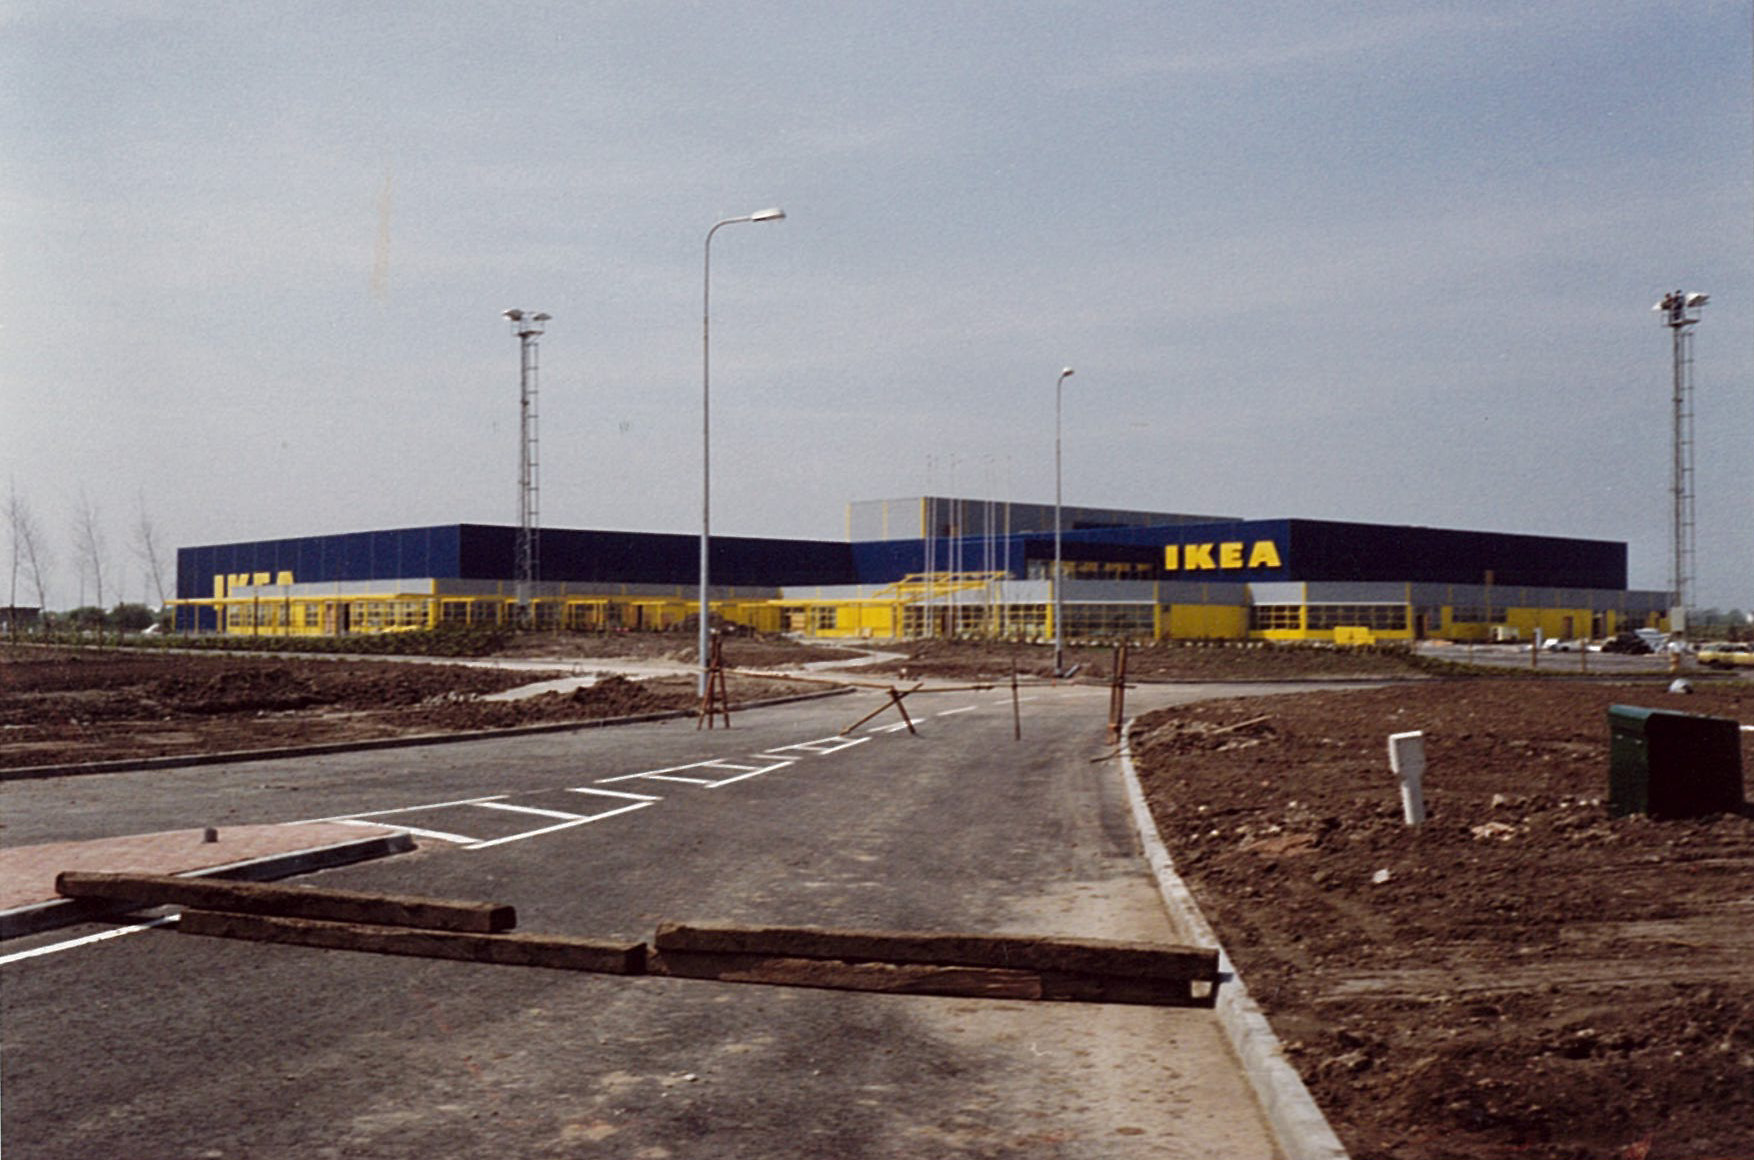 Ikea Bank Holiday Opening Times Warrington Then And Now Ikea Warrington Marks 30 Years Since Bedlam